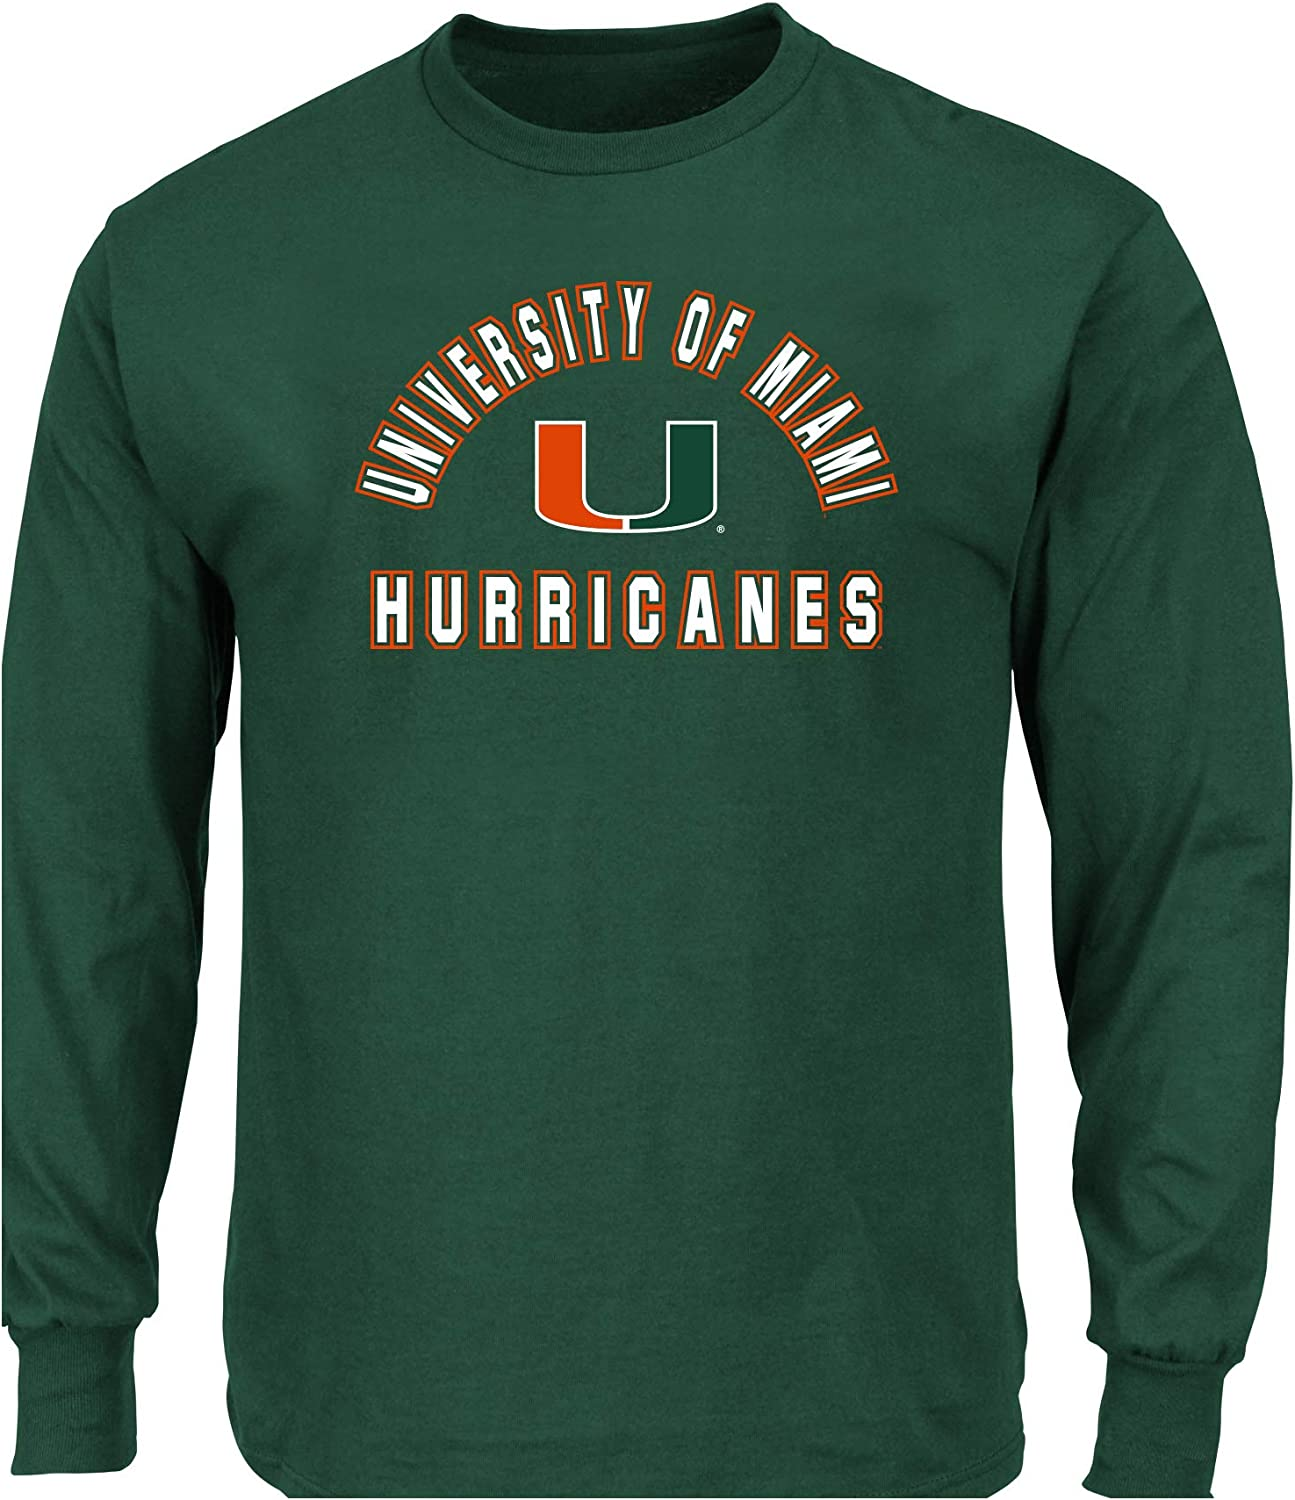 Limited time sale NCAA Men's Big and Tall Sleeve Tee Shirt Long Super Special SALE held Cotton